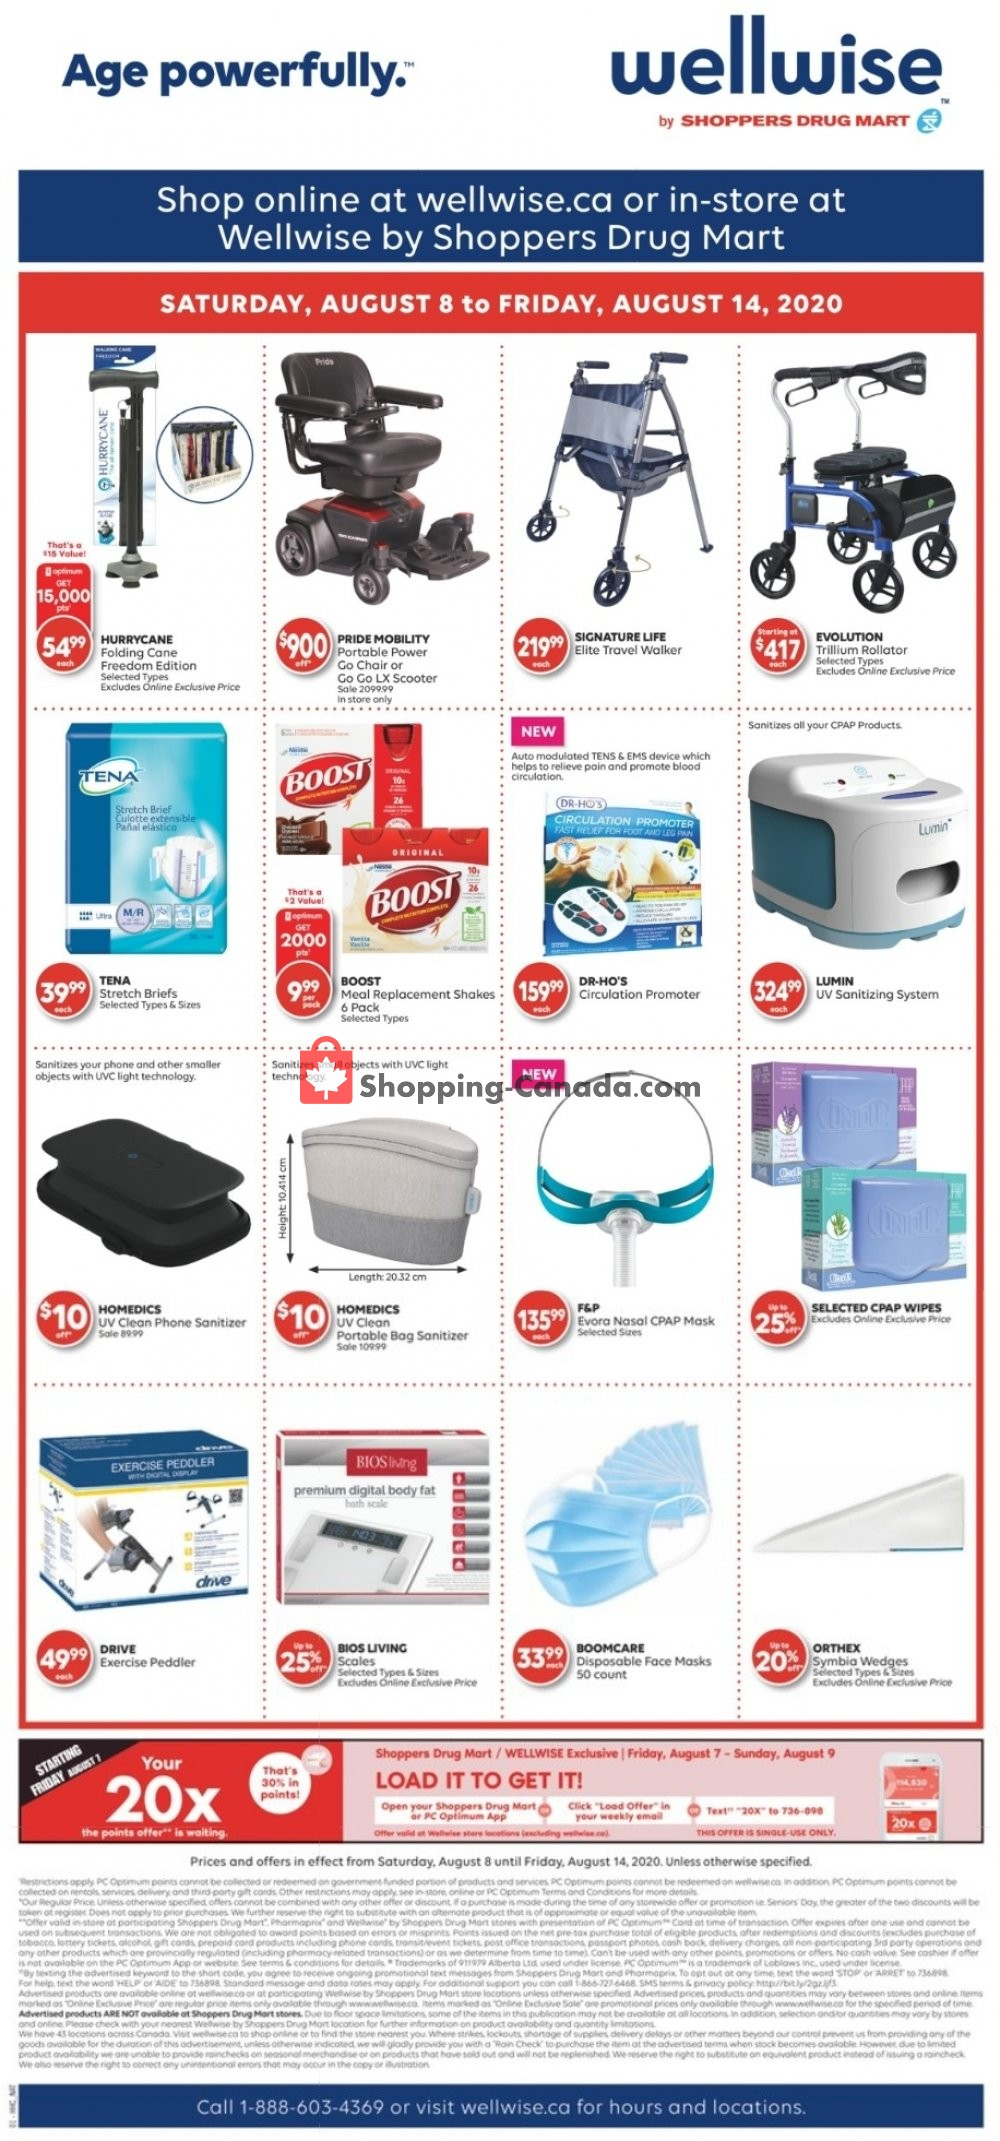 Flyer WellWise by Shoppers Drug Mart Canada - from Saturday August 8, 2020 to Friday August 14, 2020